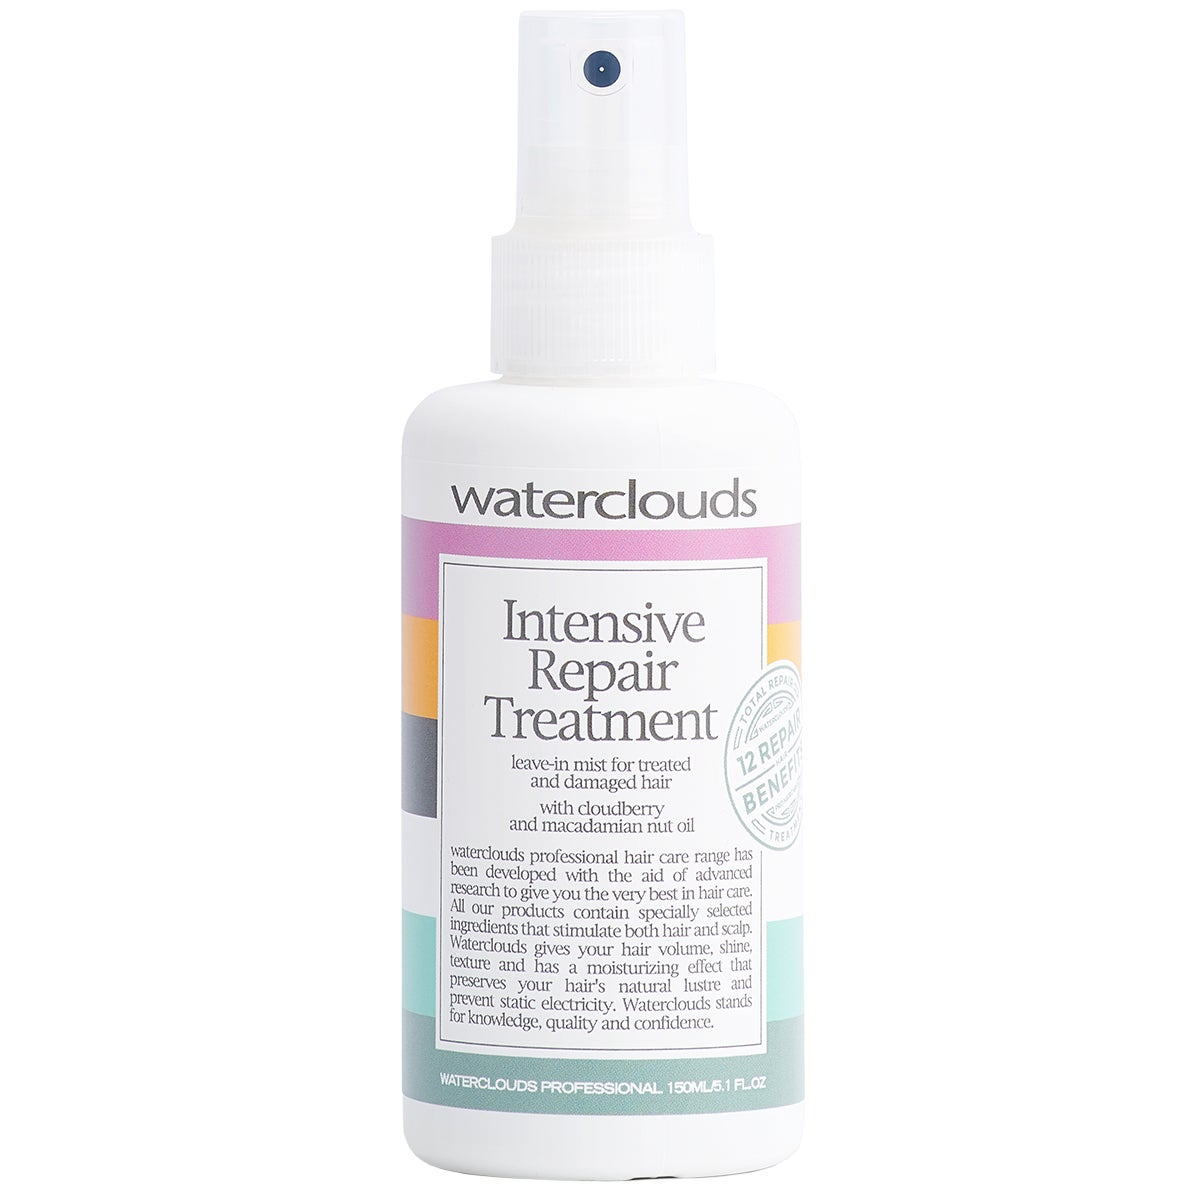 Waterclouds Intensive Repair Treatment